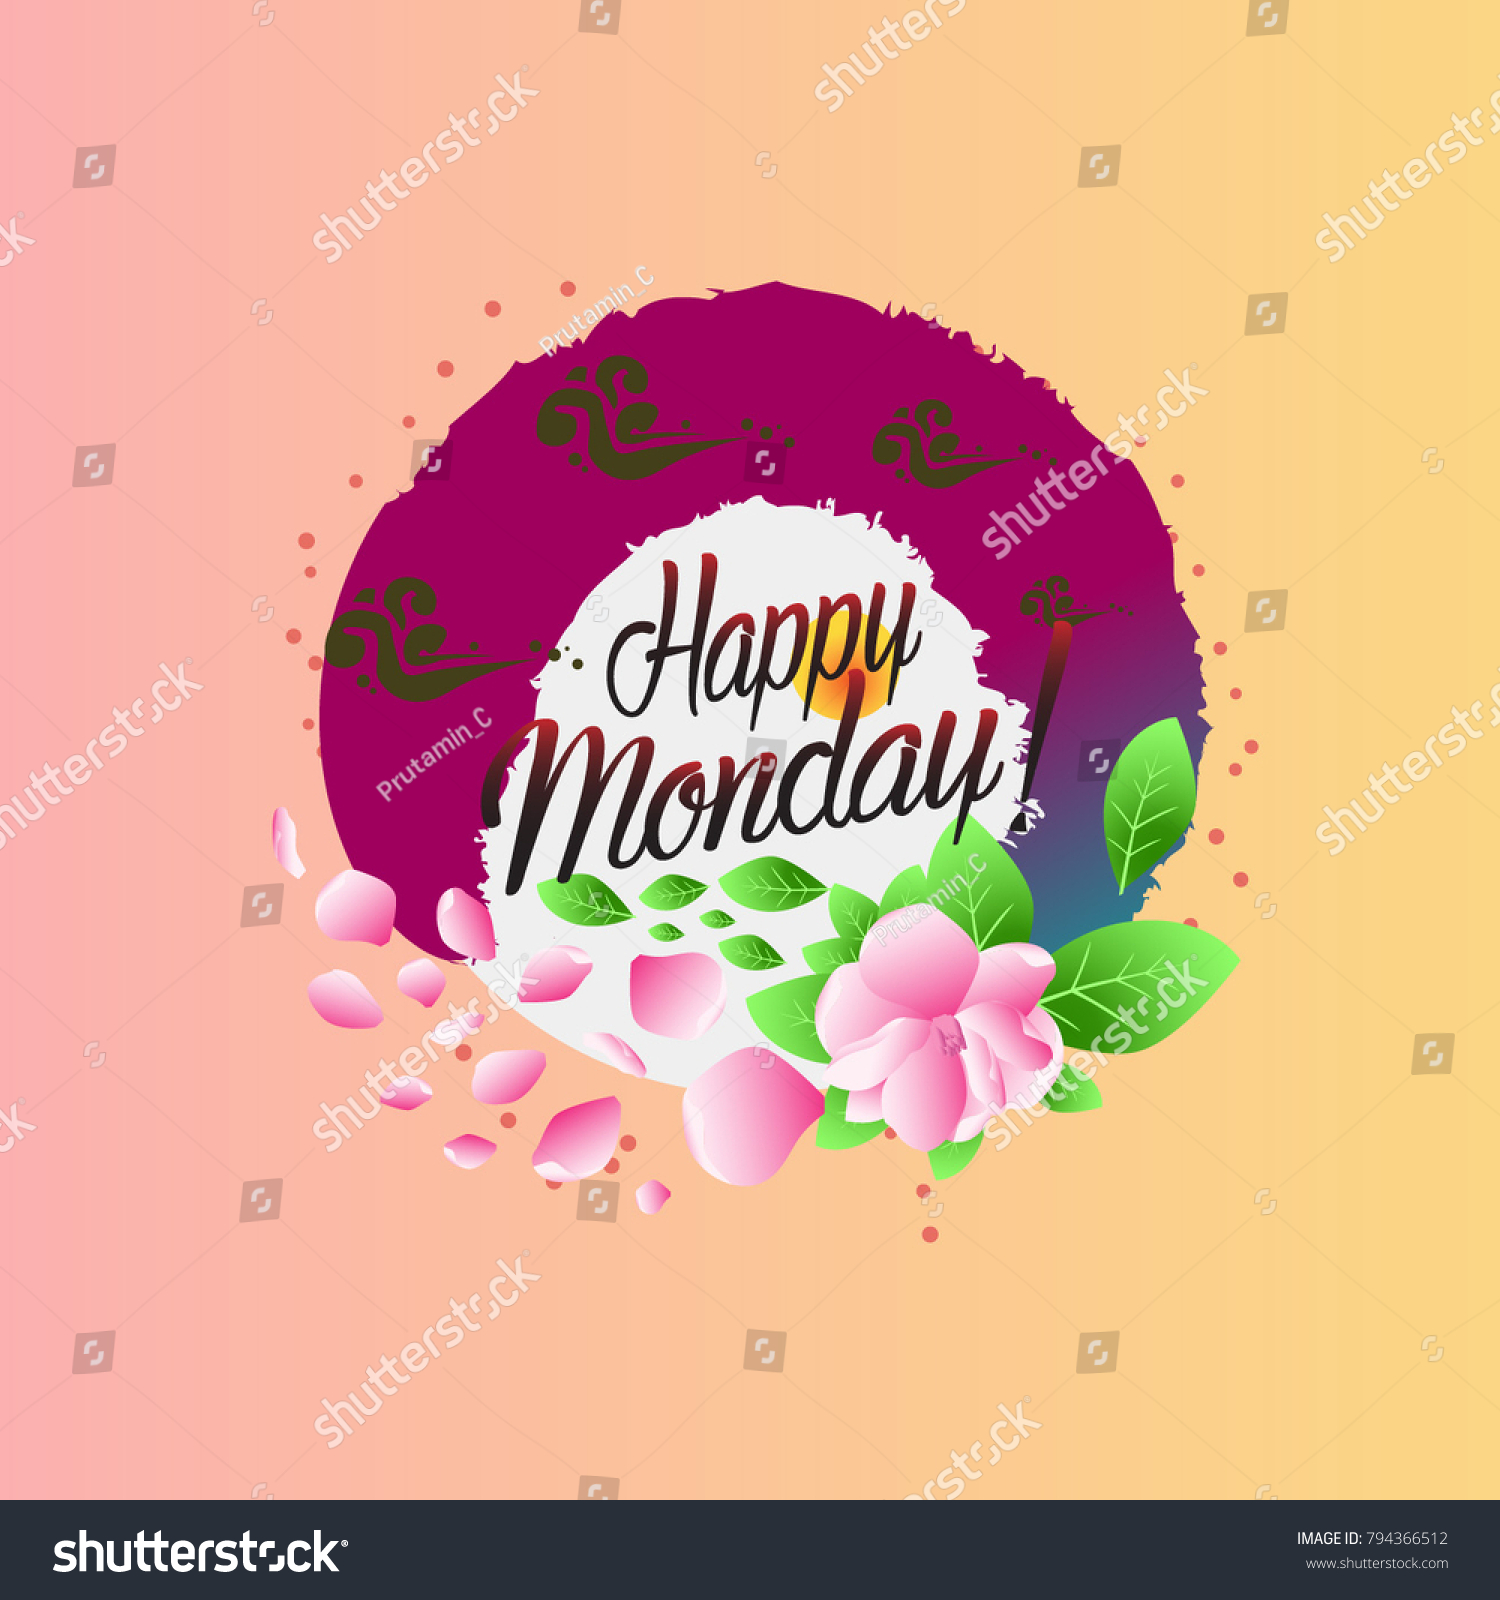 Happy Monday Beautiful Greeting Card Stock Vector Royalty Free